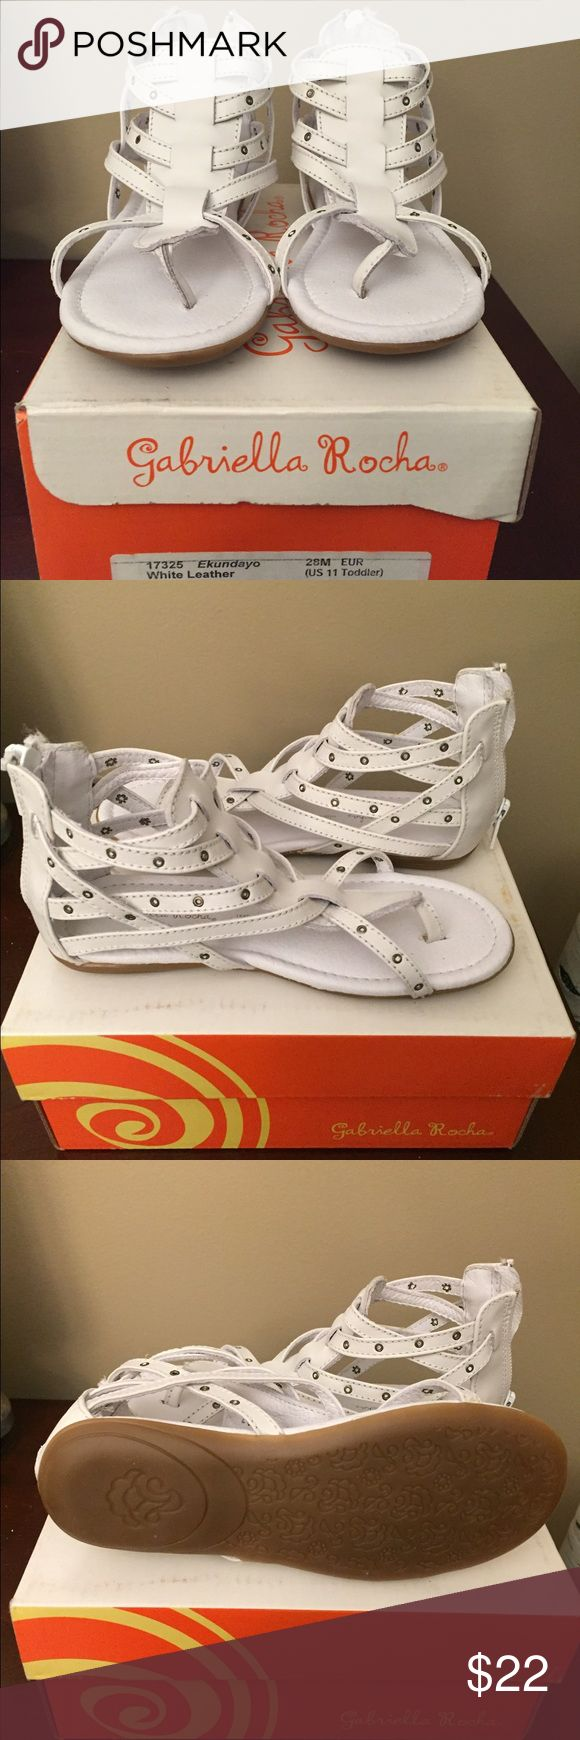 """Gabriella Rocha """"Ekundayo""""Little Girls Sandals Gabriella Rocha """"Ekundayo """"Little Girls Sandals. Adorable white leather sandals for your little girl!! Size 11.New with box!!Feet through size, very comfortable!! Gabriella Rocha Shoes Sandals & Flip Flops"""